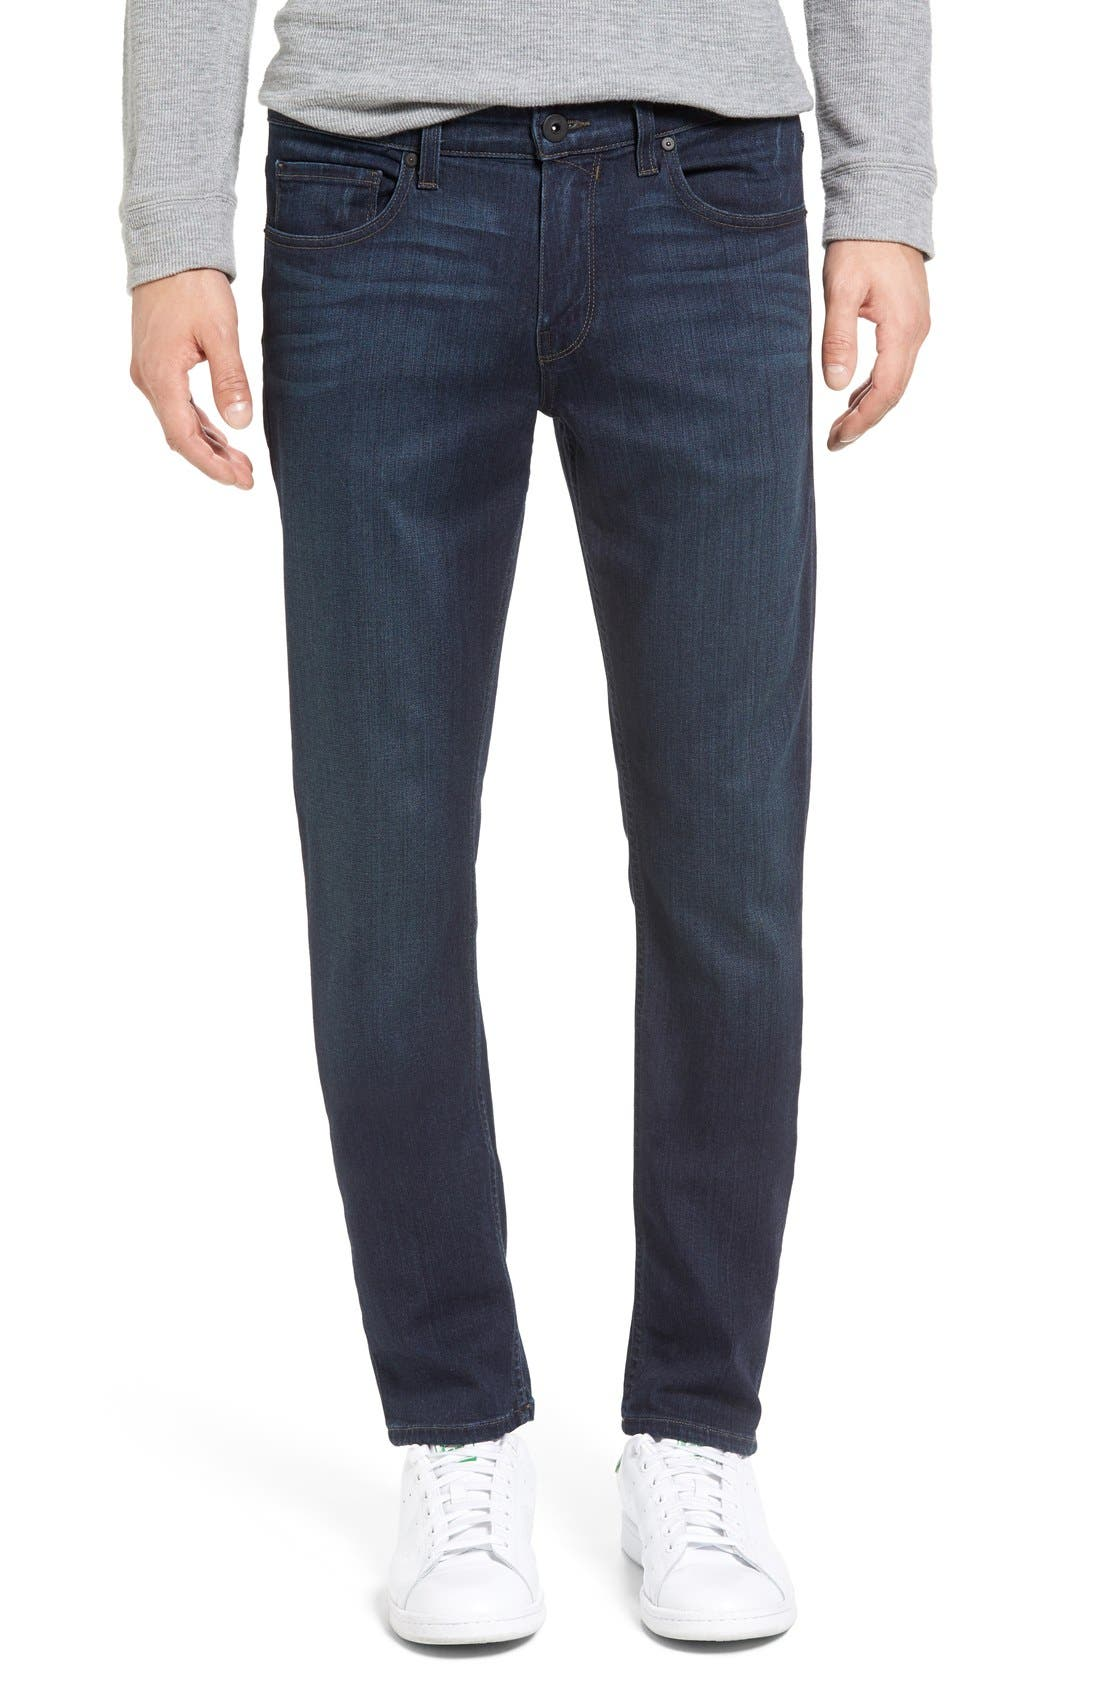 Men's Paige Transcend - Croft Skinny Fit Jeans